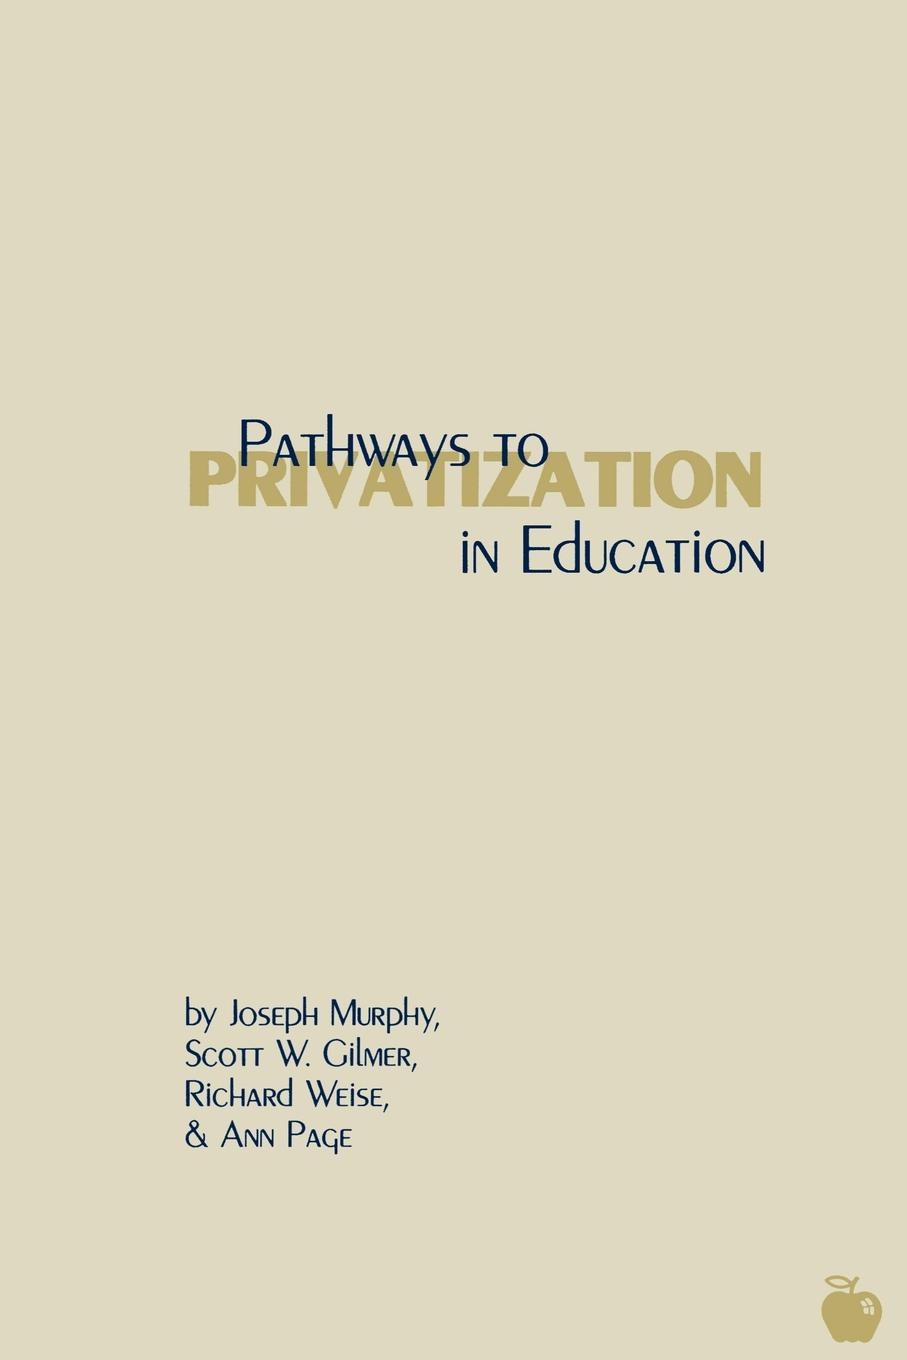 Scott W. Gilmer, Richard Weise, Ann Page Pathways to Privatization in Education w faulkes barcarolle in g major page 2 page 7